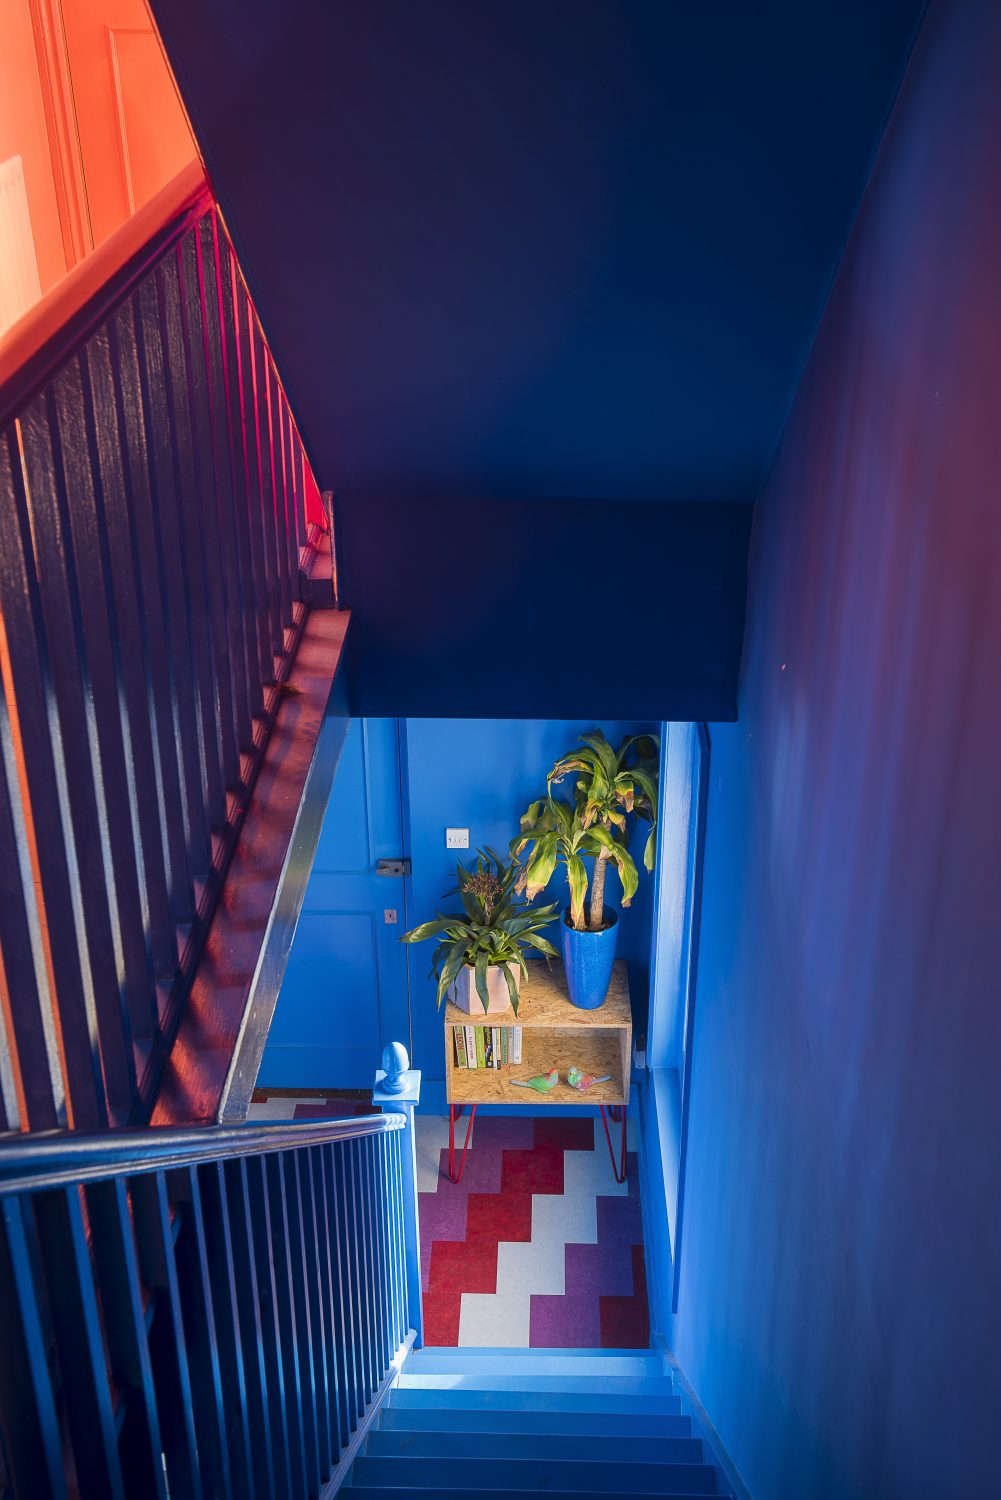 Amy has opted for a bright and brilliant cobalt blue in the hallway